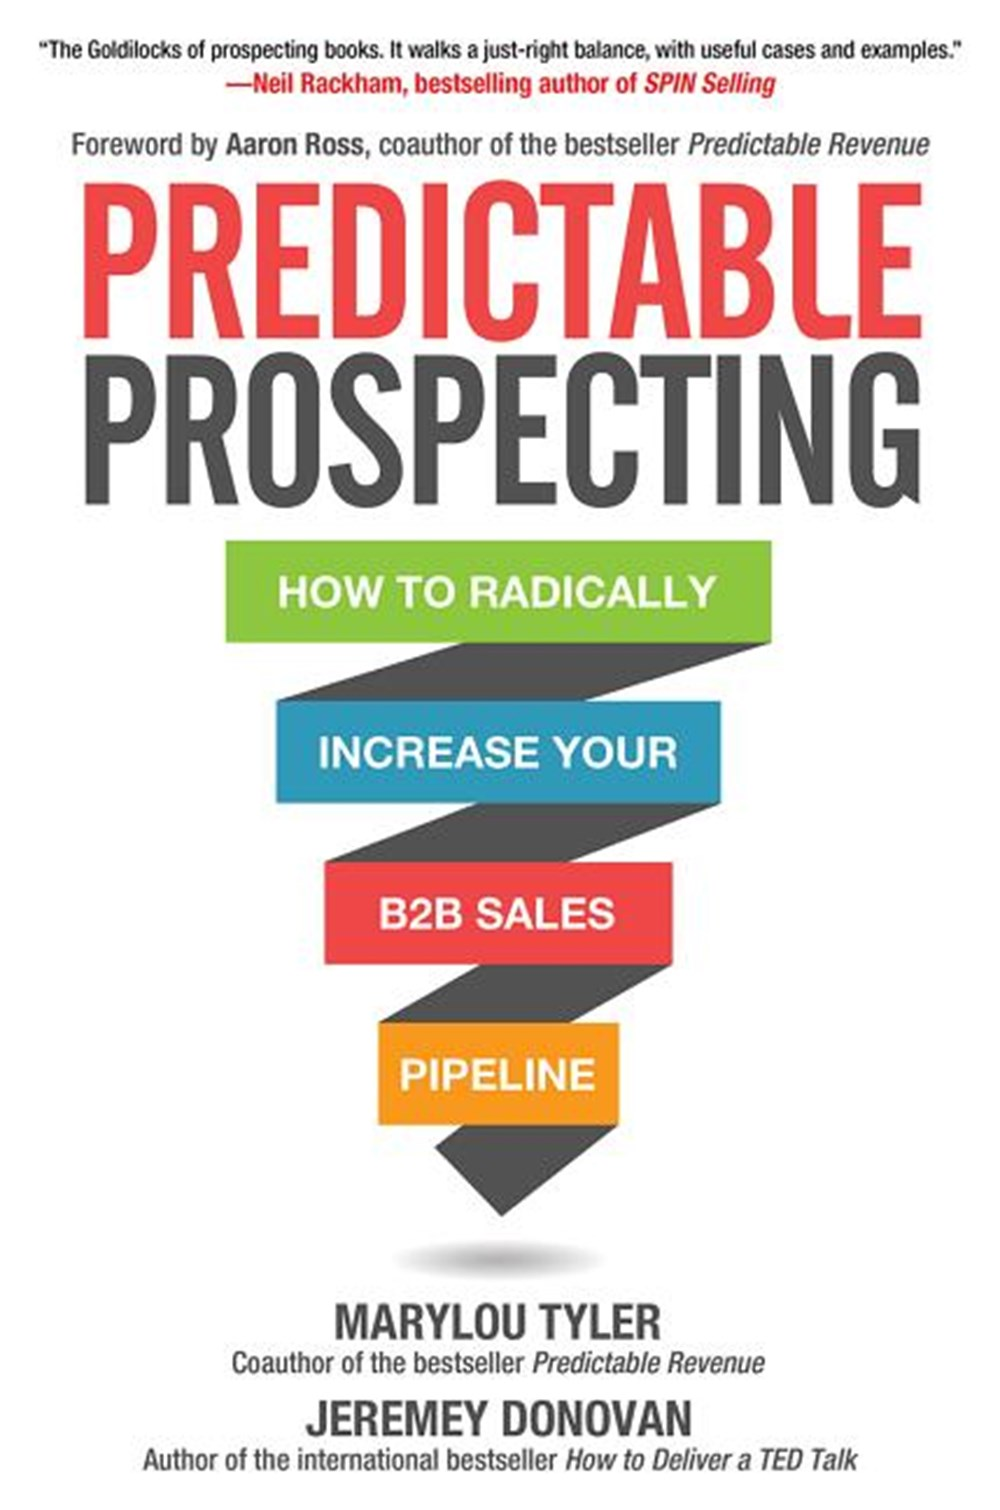 Predictable Prospecting How to Radically Increase Your B2B Sales Pipeline